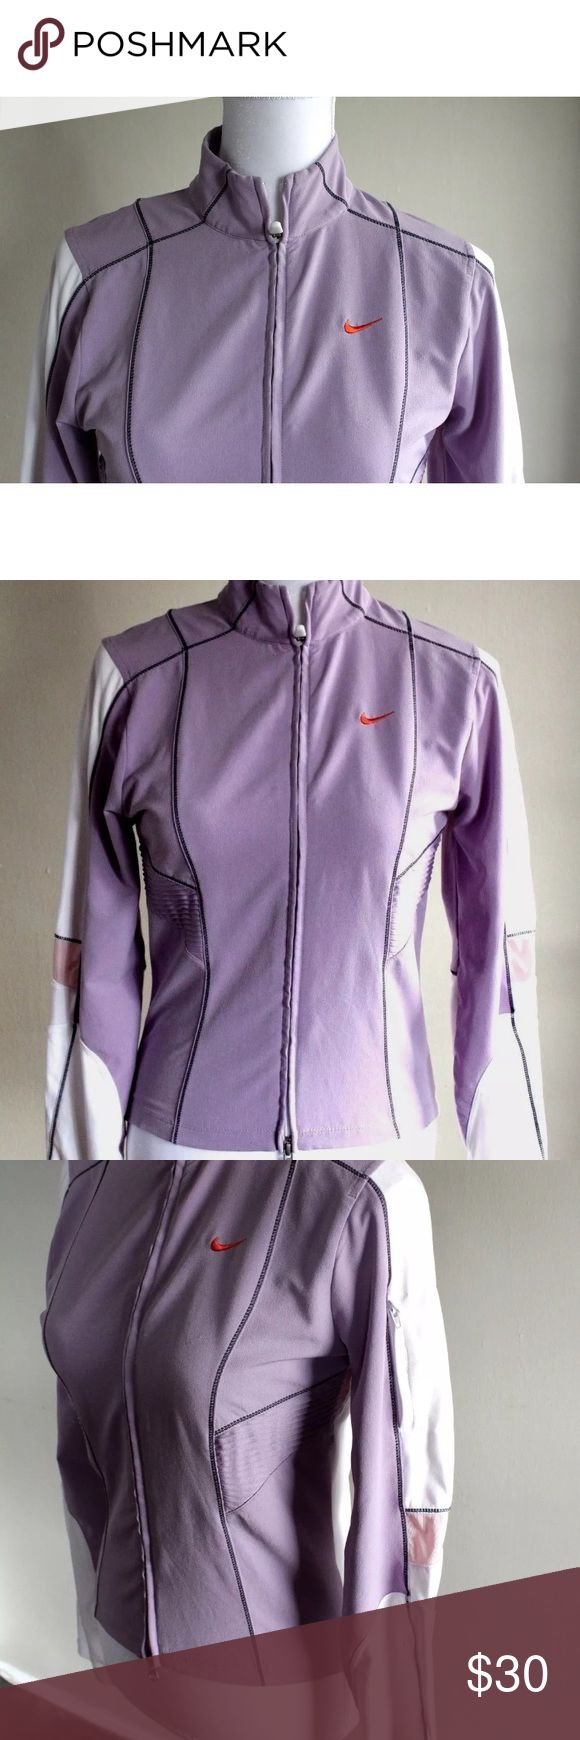 Nike Women's Activewear Full Zip Jacket Purple S Nike women's active apparel zip up jacket in a light purple, lavender color. In excellent condition. Size small. Nike Tops Sweatshirts & Hoodies